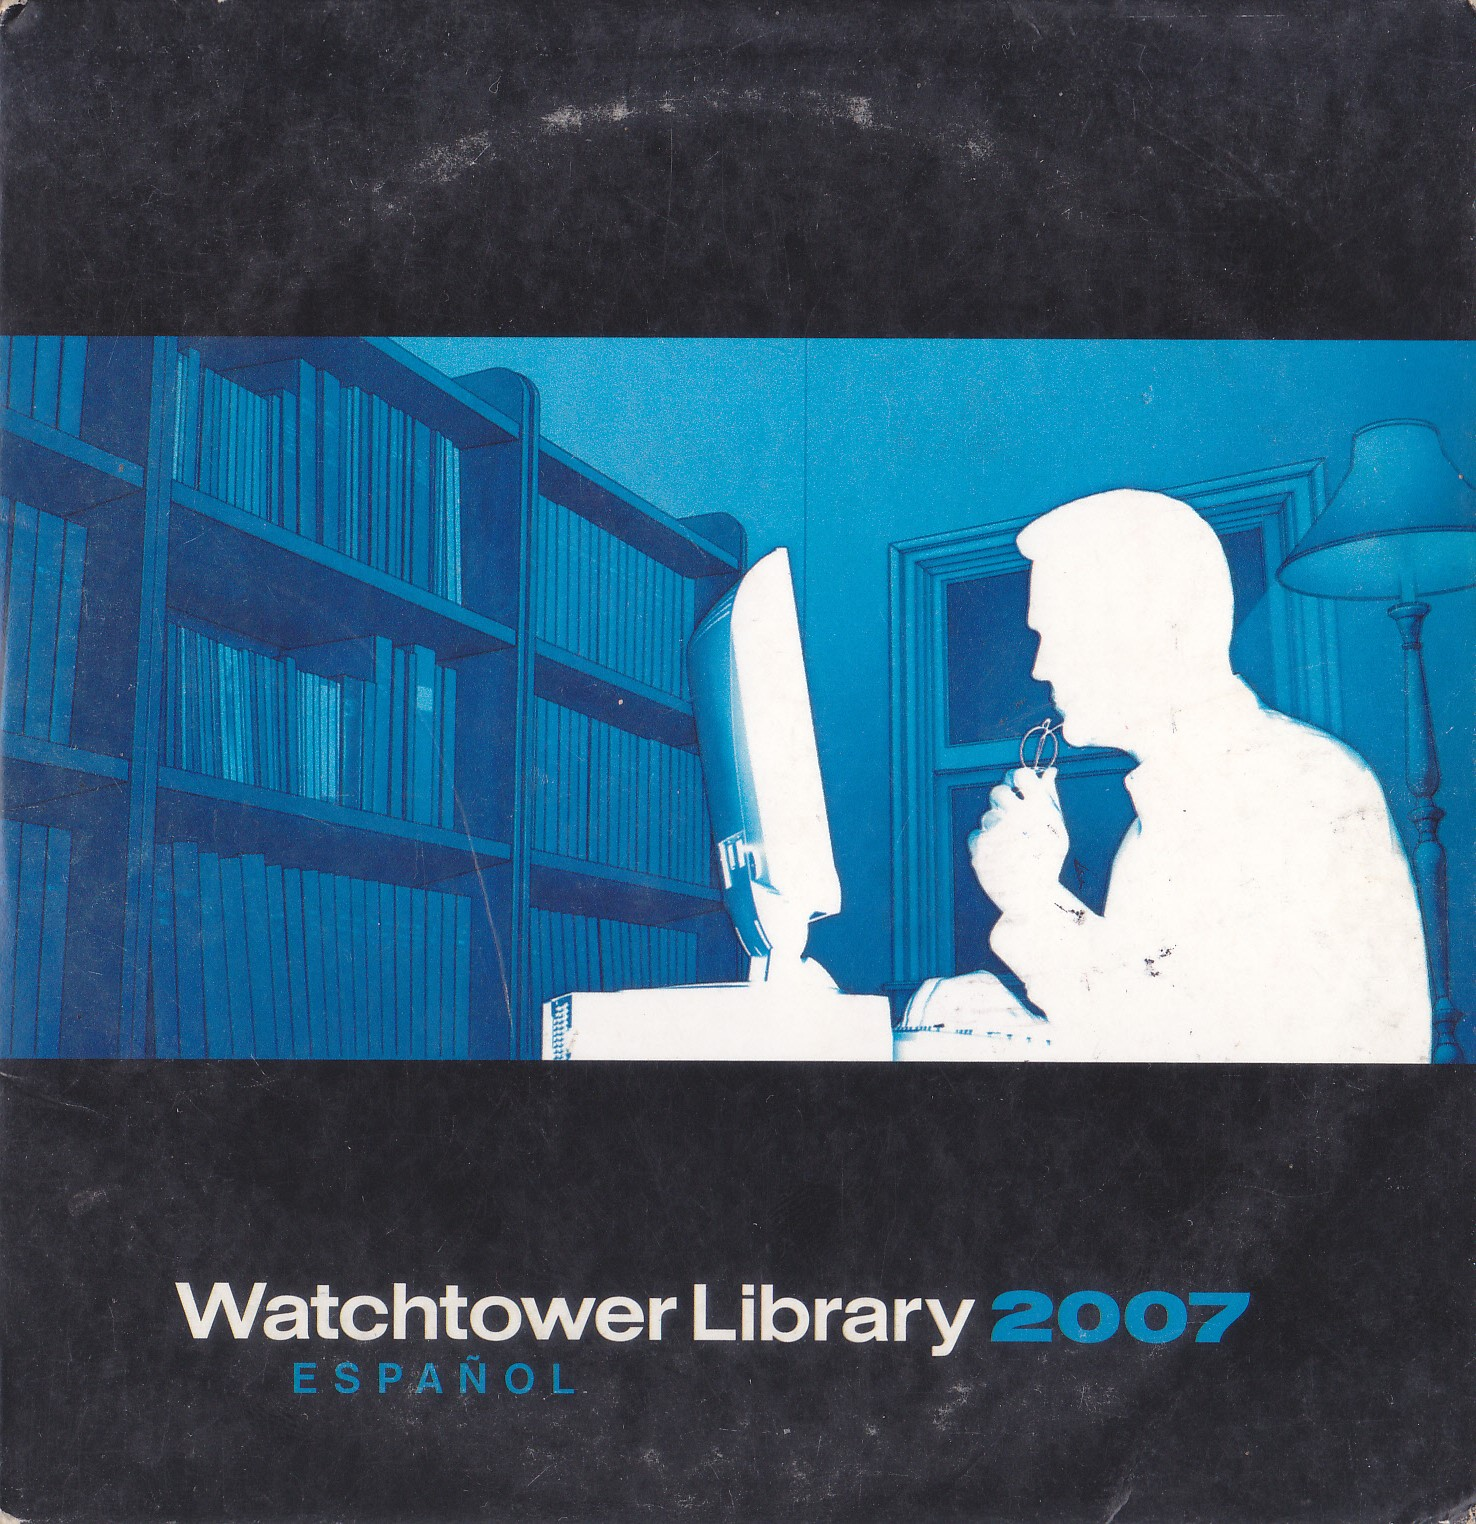 Watchtower Library Descargar Watchtower Library 2014 En Espanol Jw Library